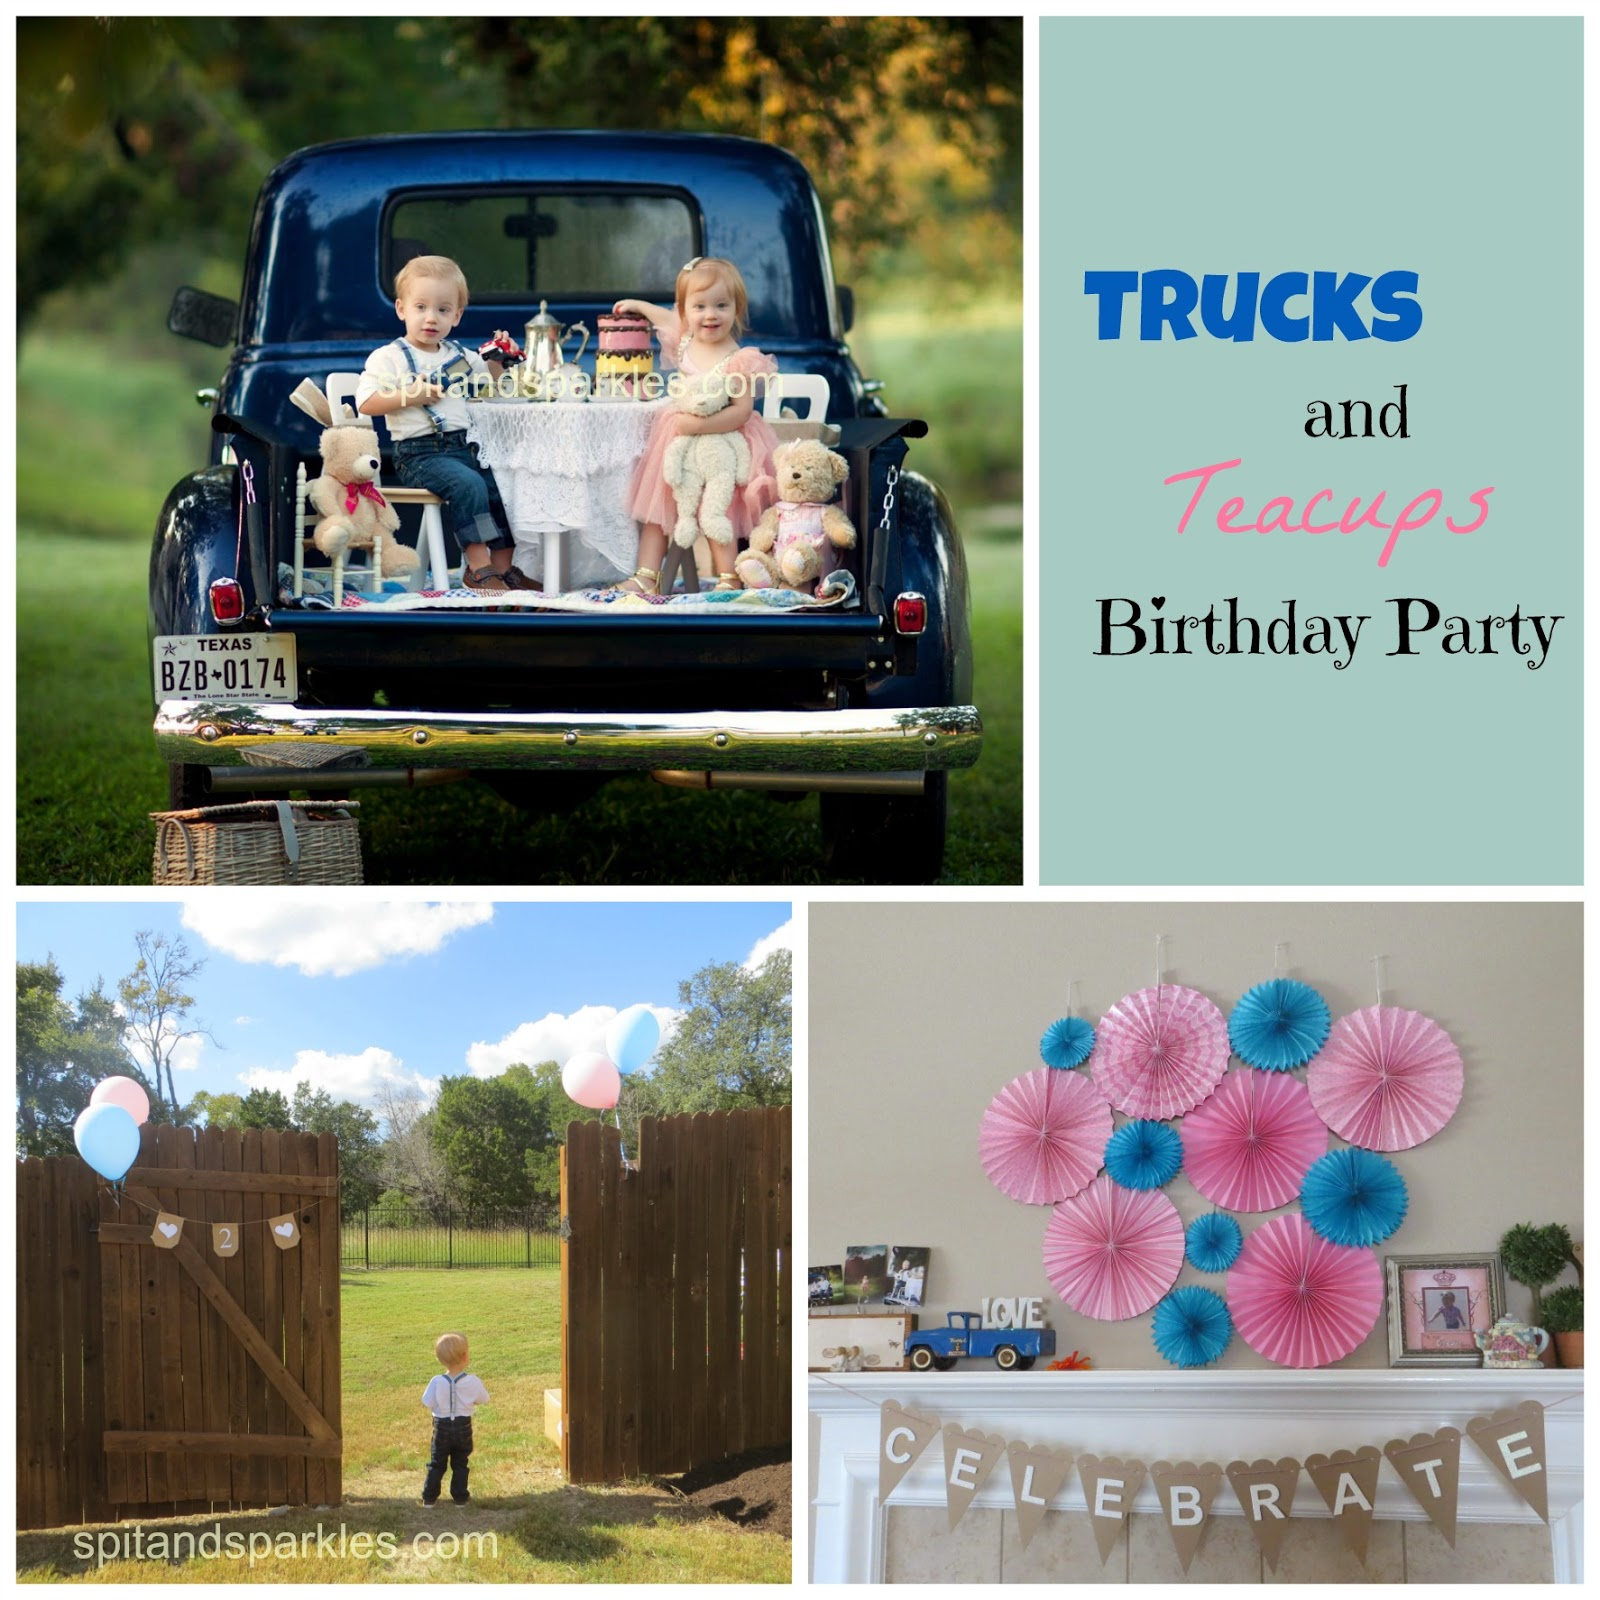 Trucks and Teacups birthday for boy/girl twins by Spit and Sparkles Blog. #birthday #twins #truckparty #teaparty #littlebluetruck #teacups